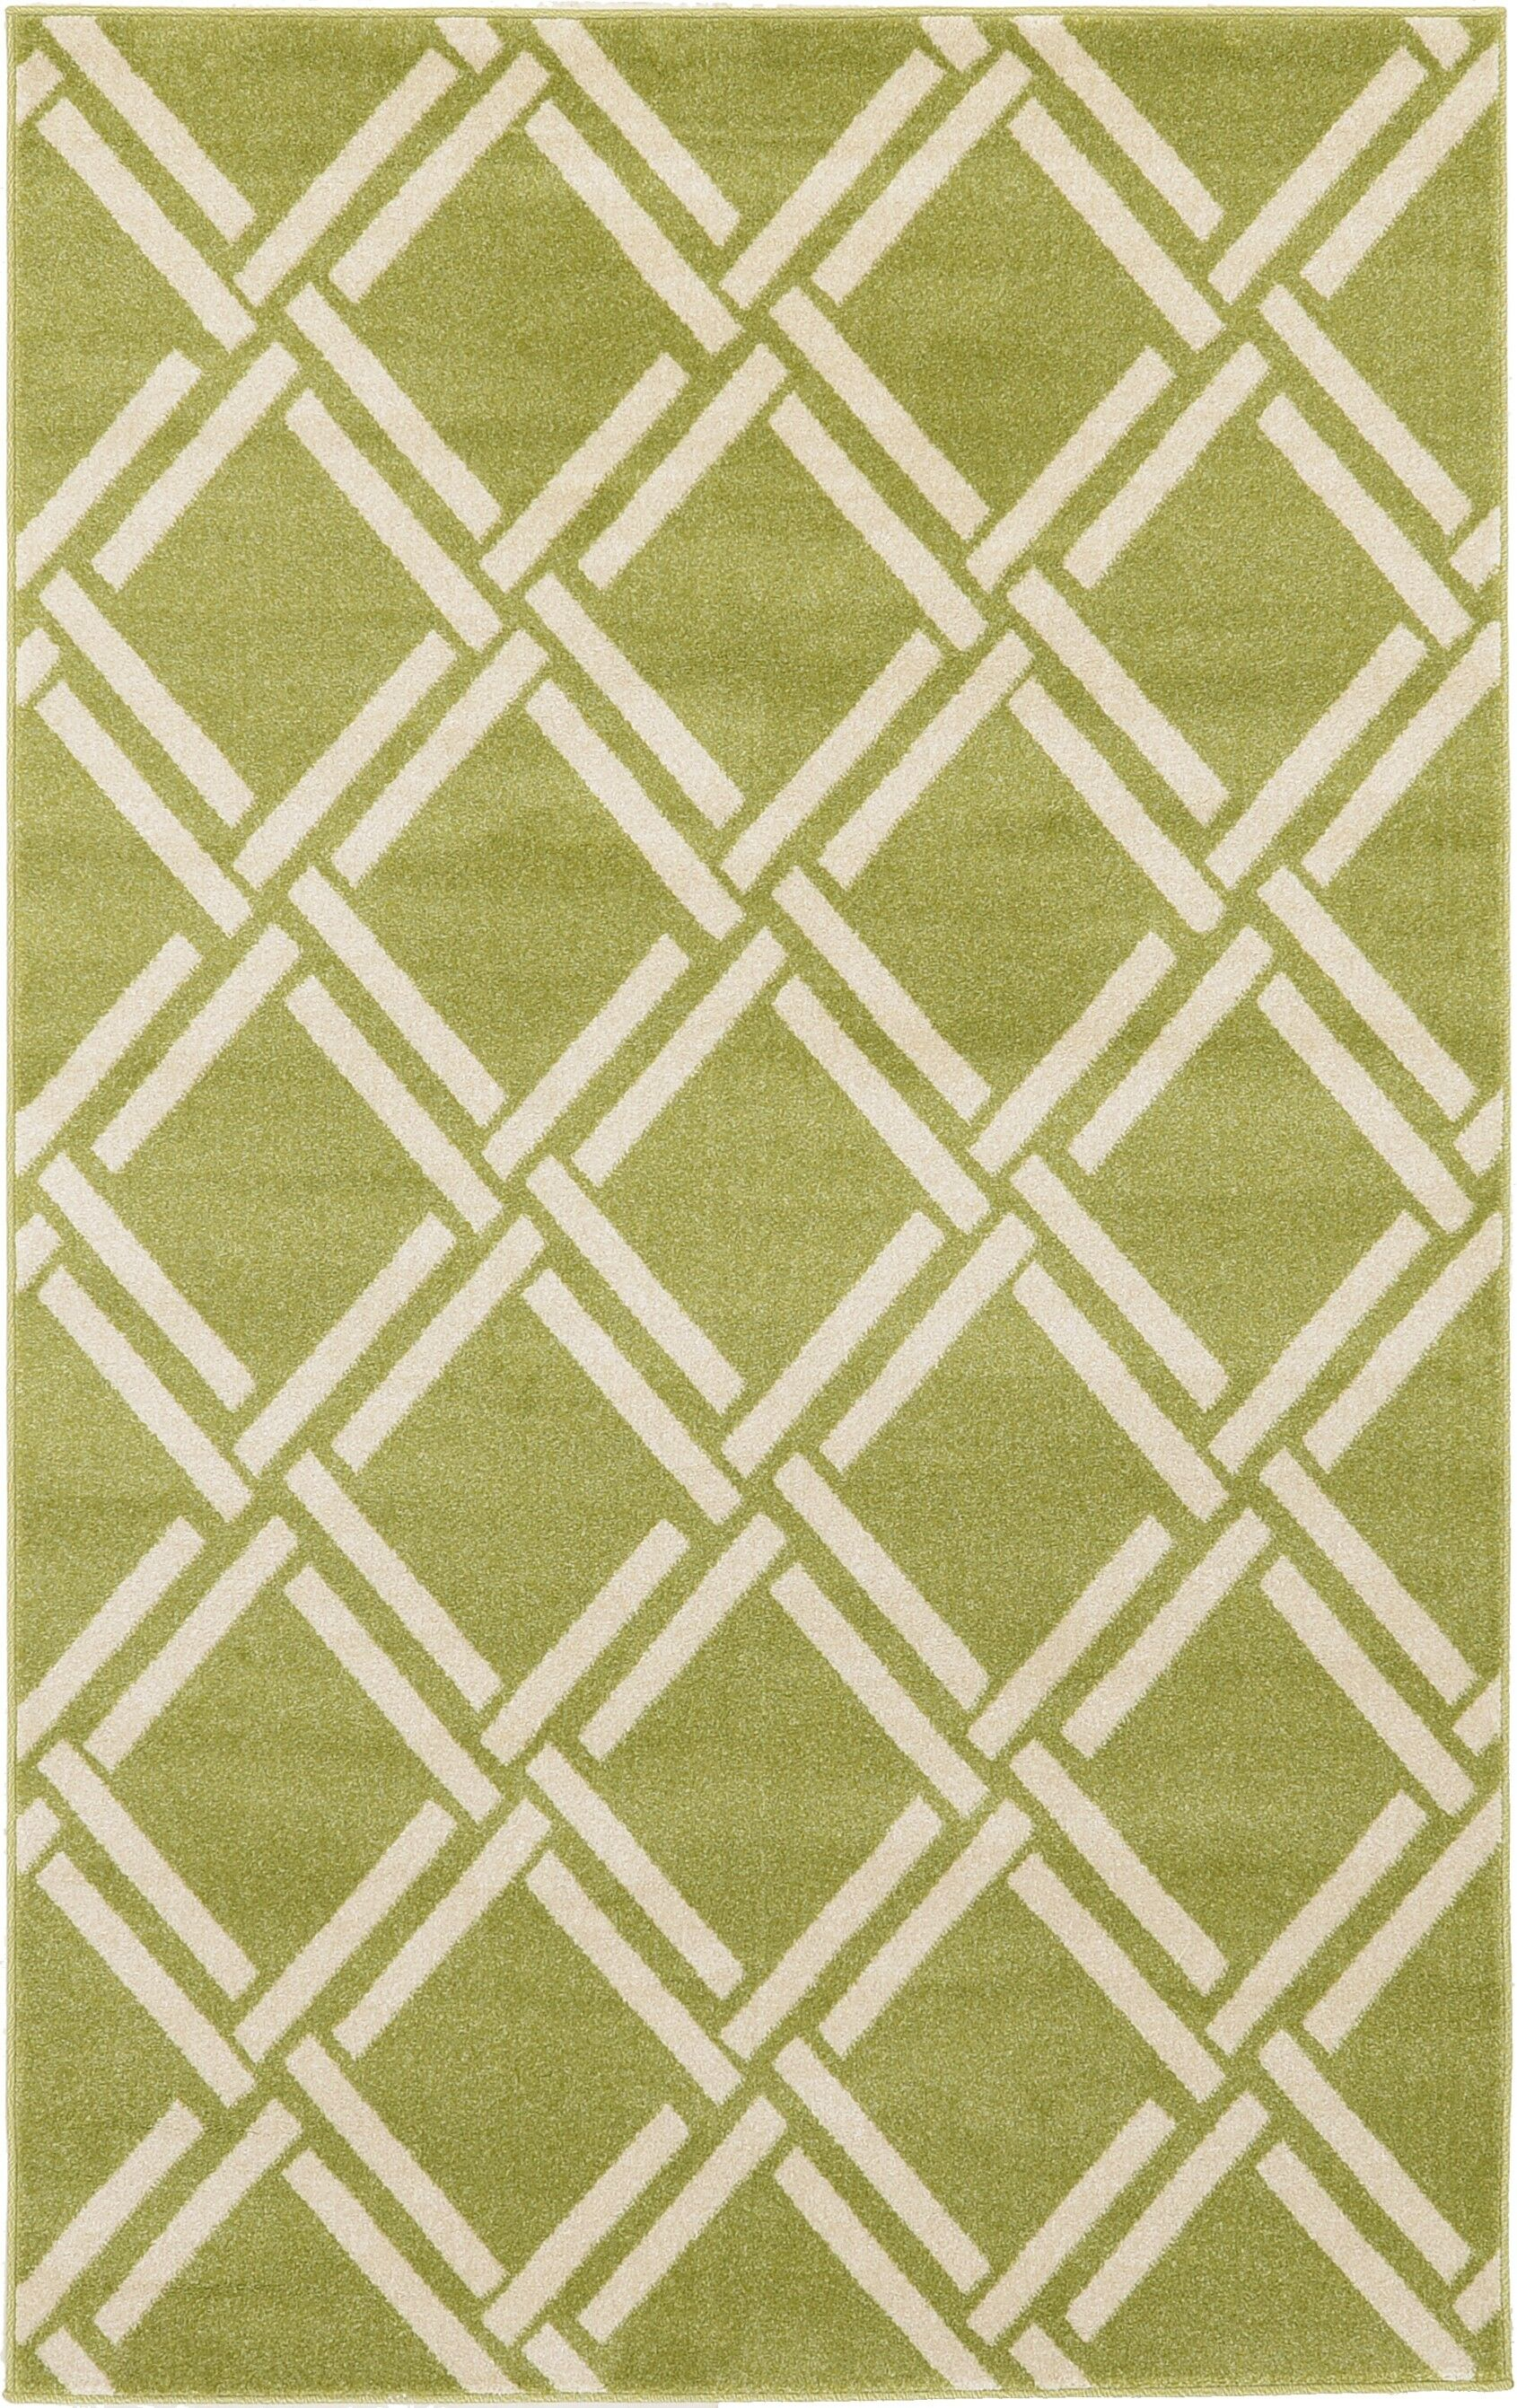 Storyvale Green Area Rug Rug Size: Rectangle 5' x 8'